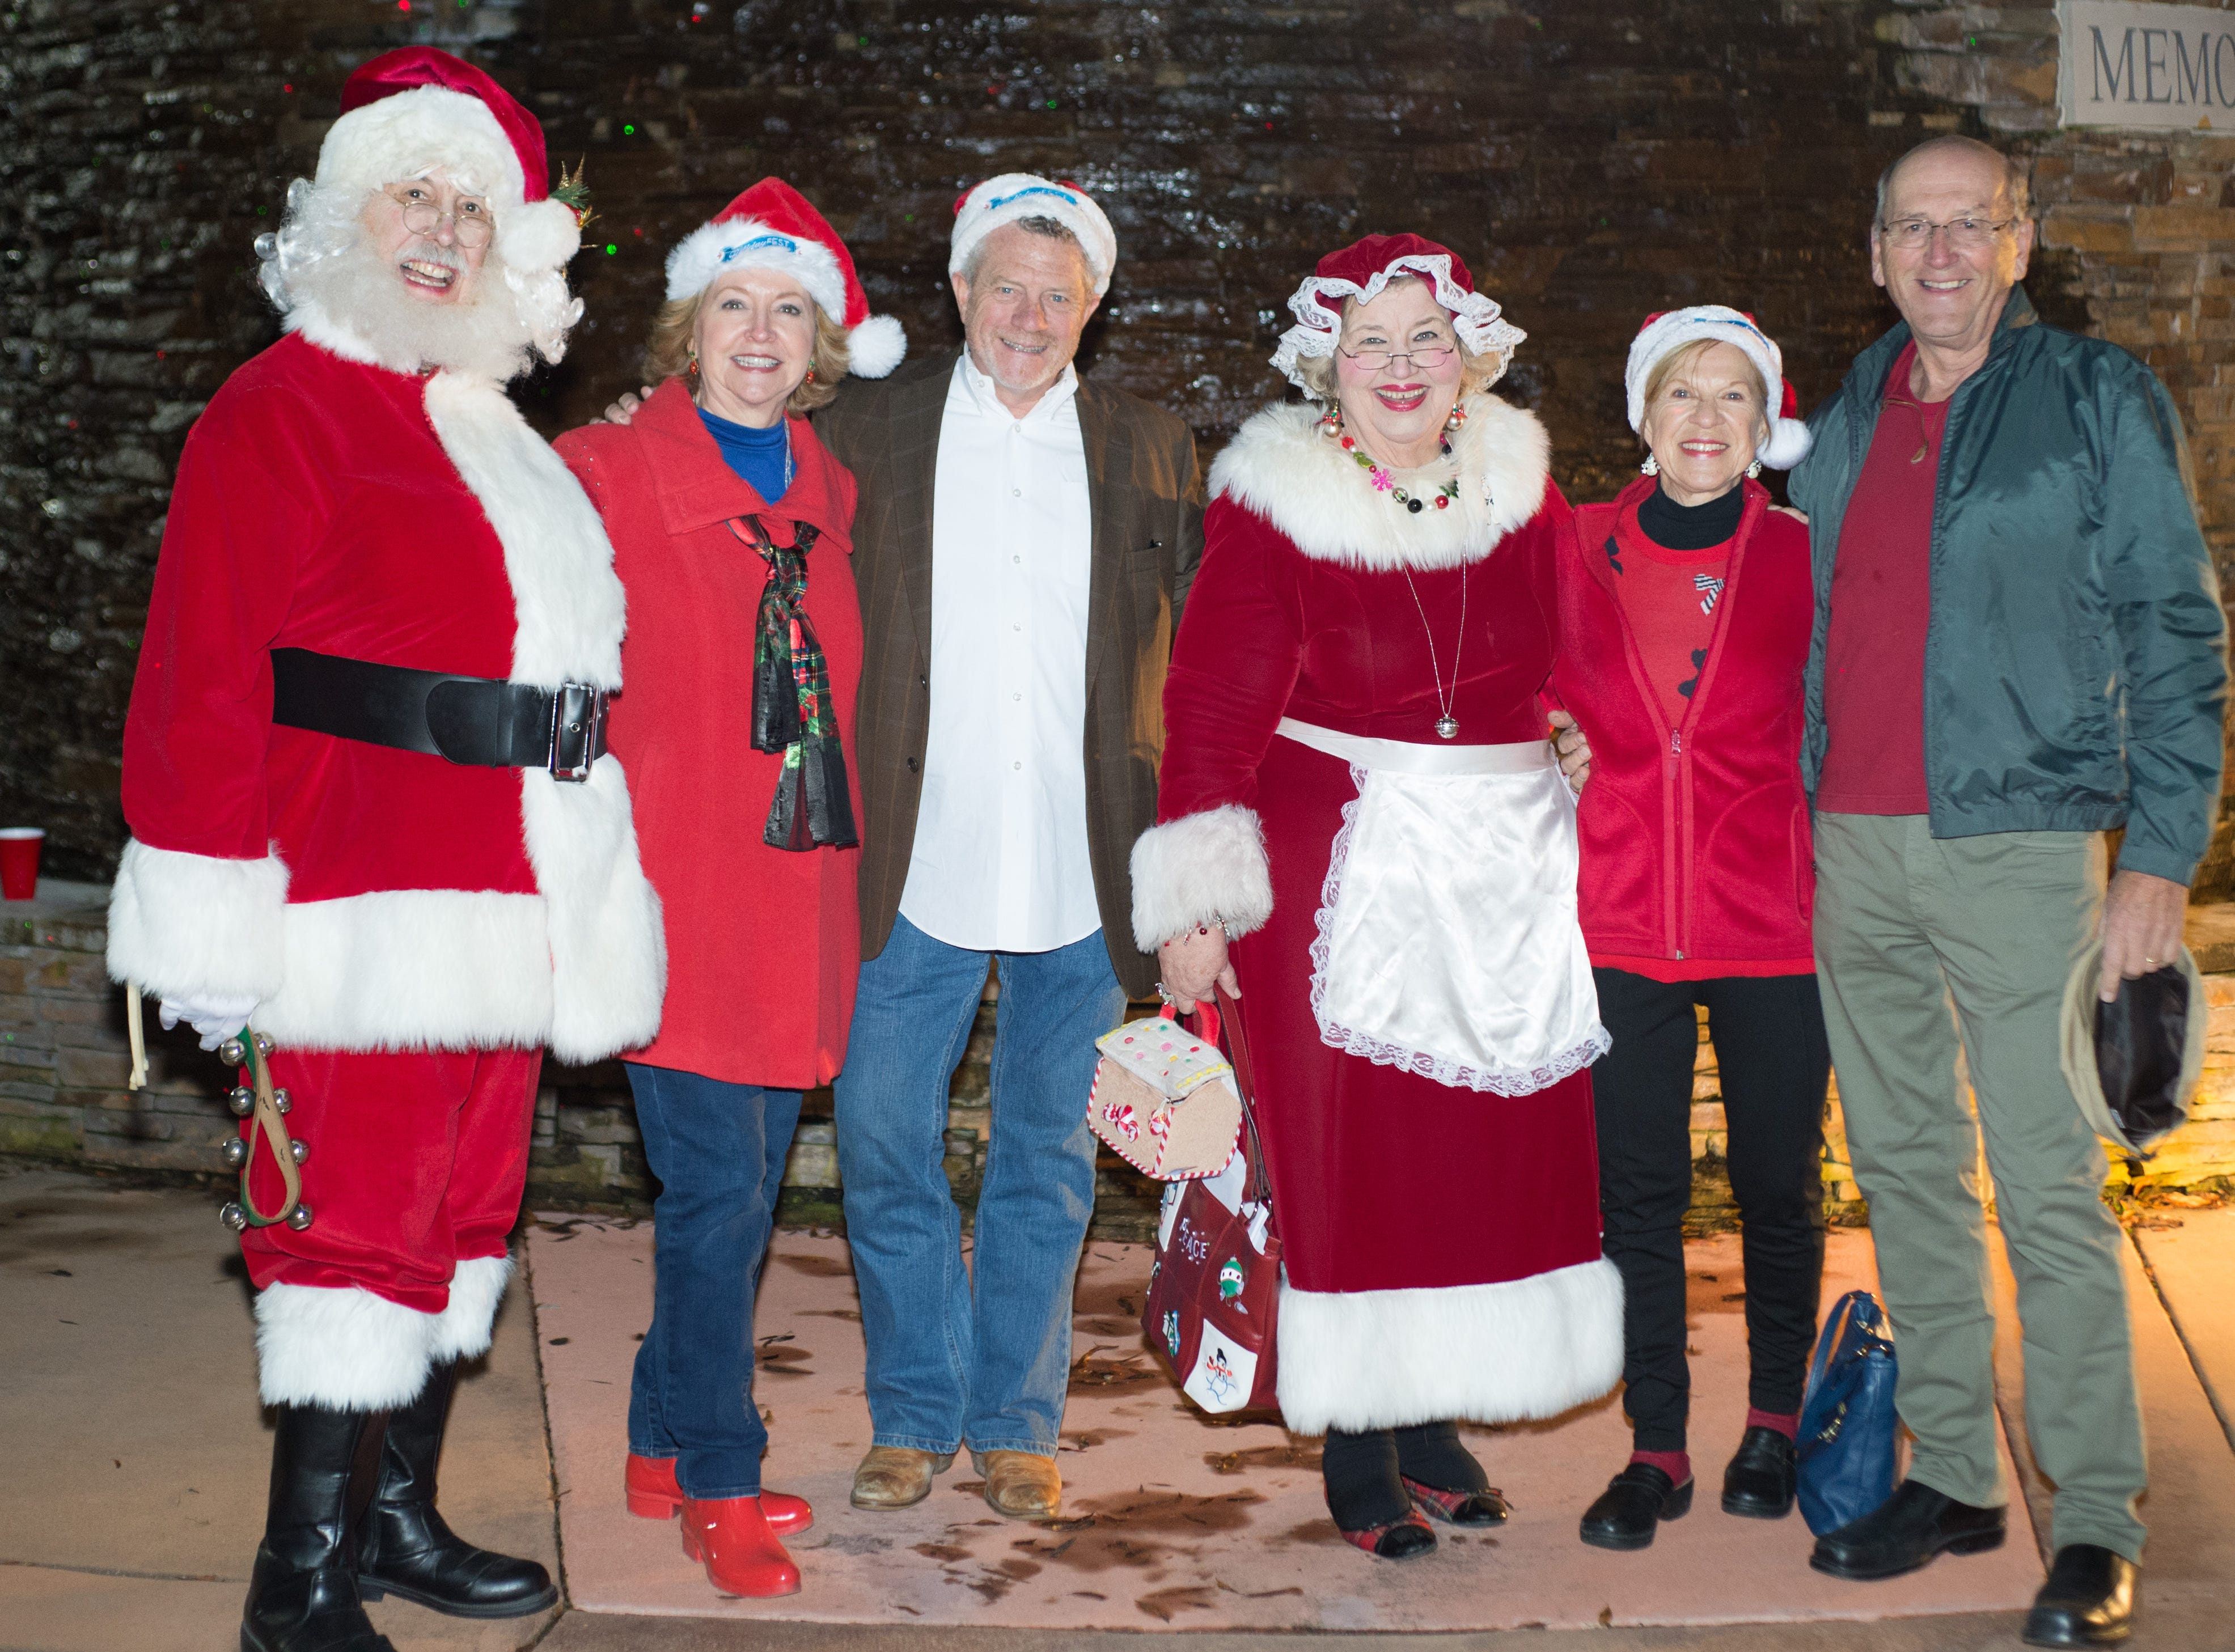 The Hendersonville HolidayFest Annual Tree Lighting Ceremony at Memorial Park on Sunday, Nov. 25.